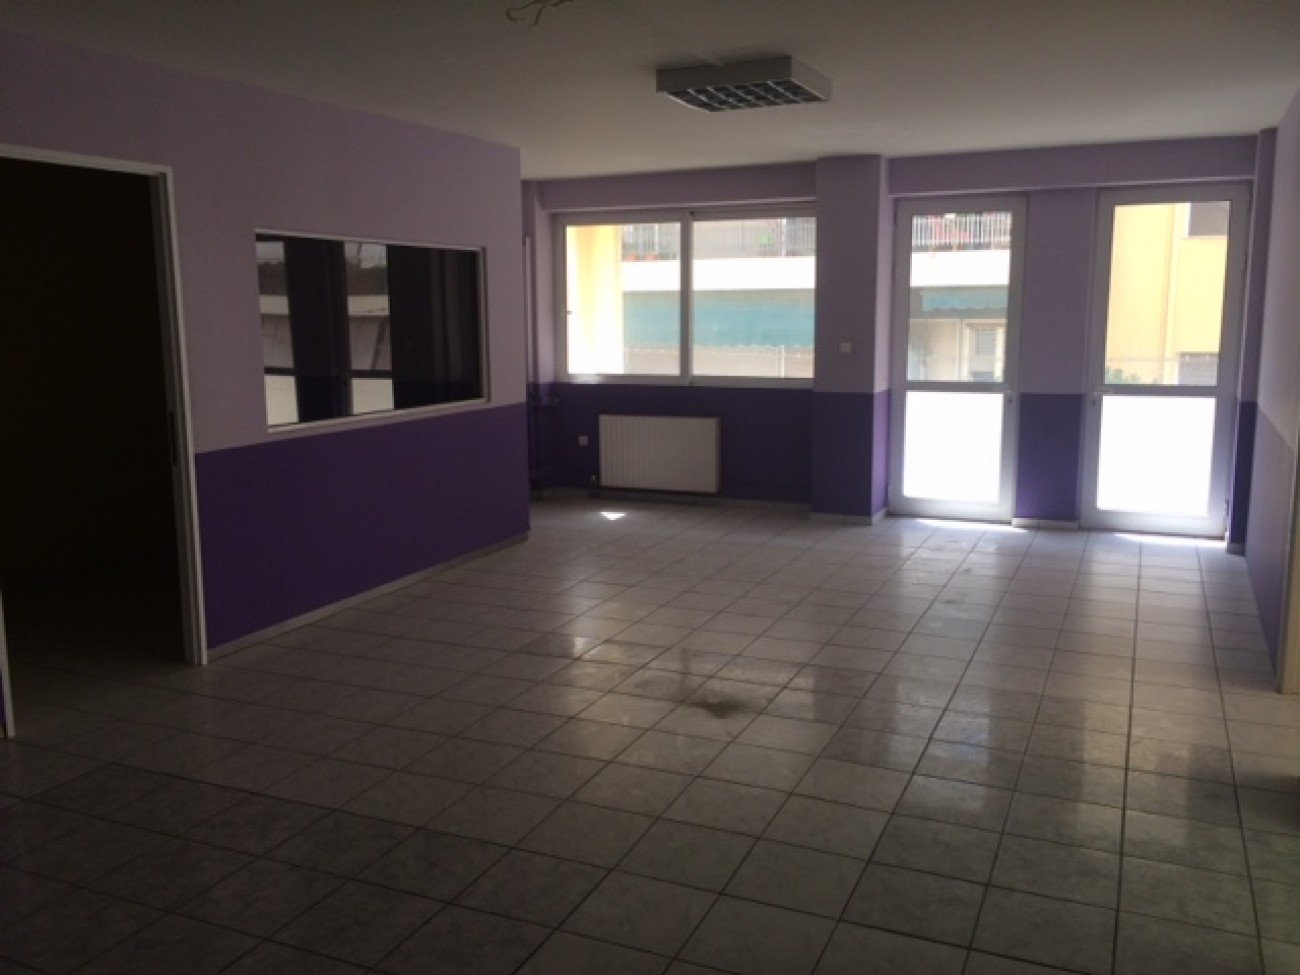 Building for Rent in Kallithea, Central & South Region of Athens, Greece